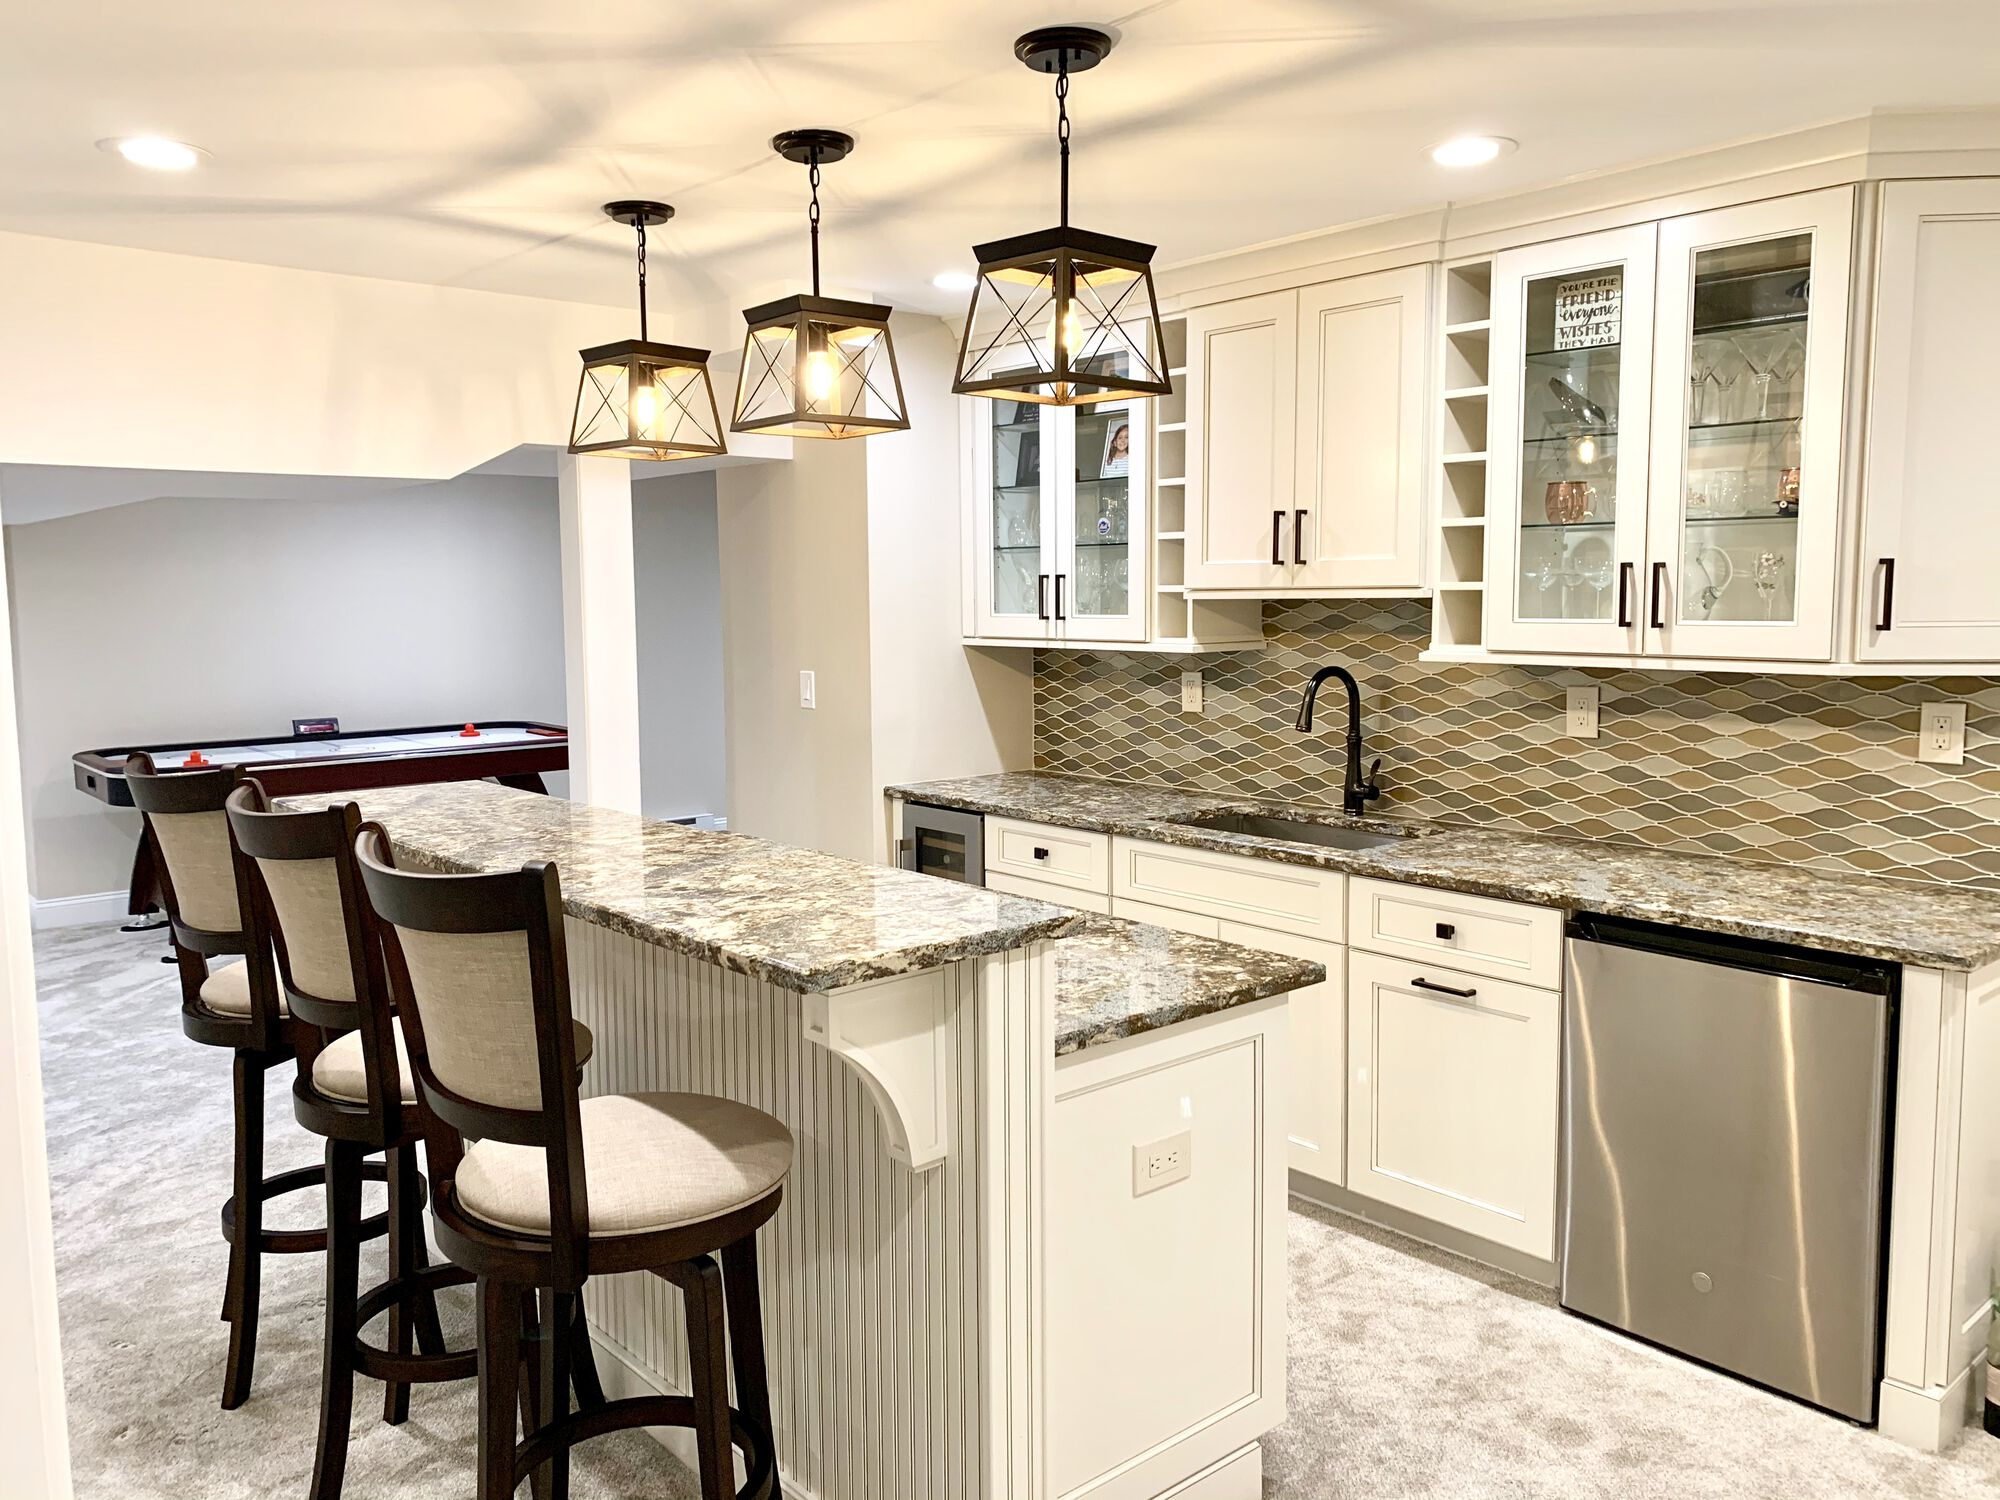 Basement Wet Bar with Fabuwood Cabinetry and Granite Stone Countertops in Hillsborough, Somerset County NJ